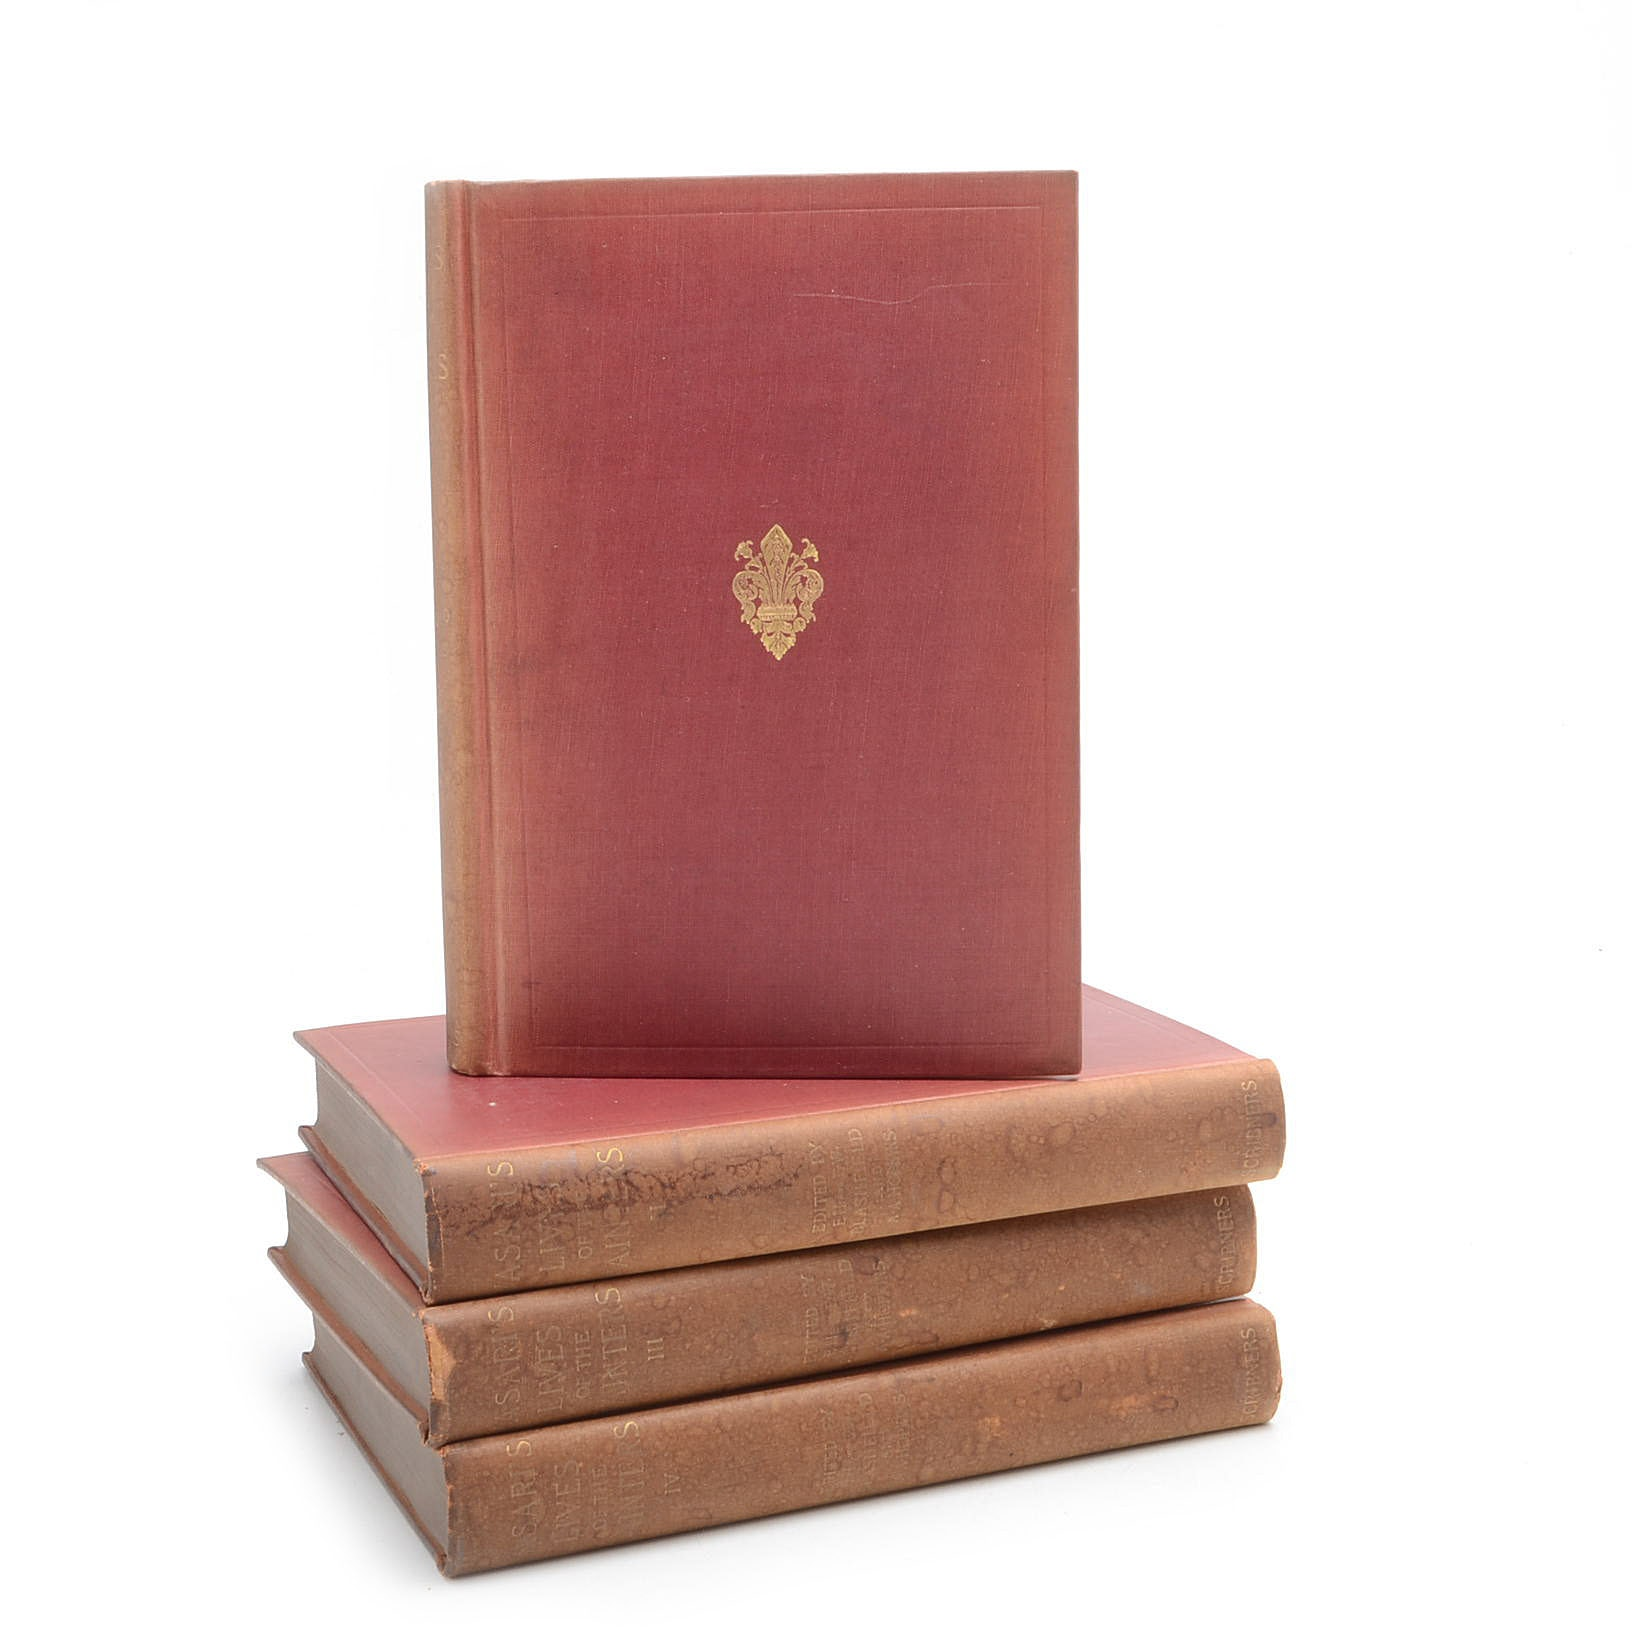 Collection of Antique Books on Artists